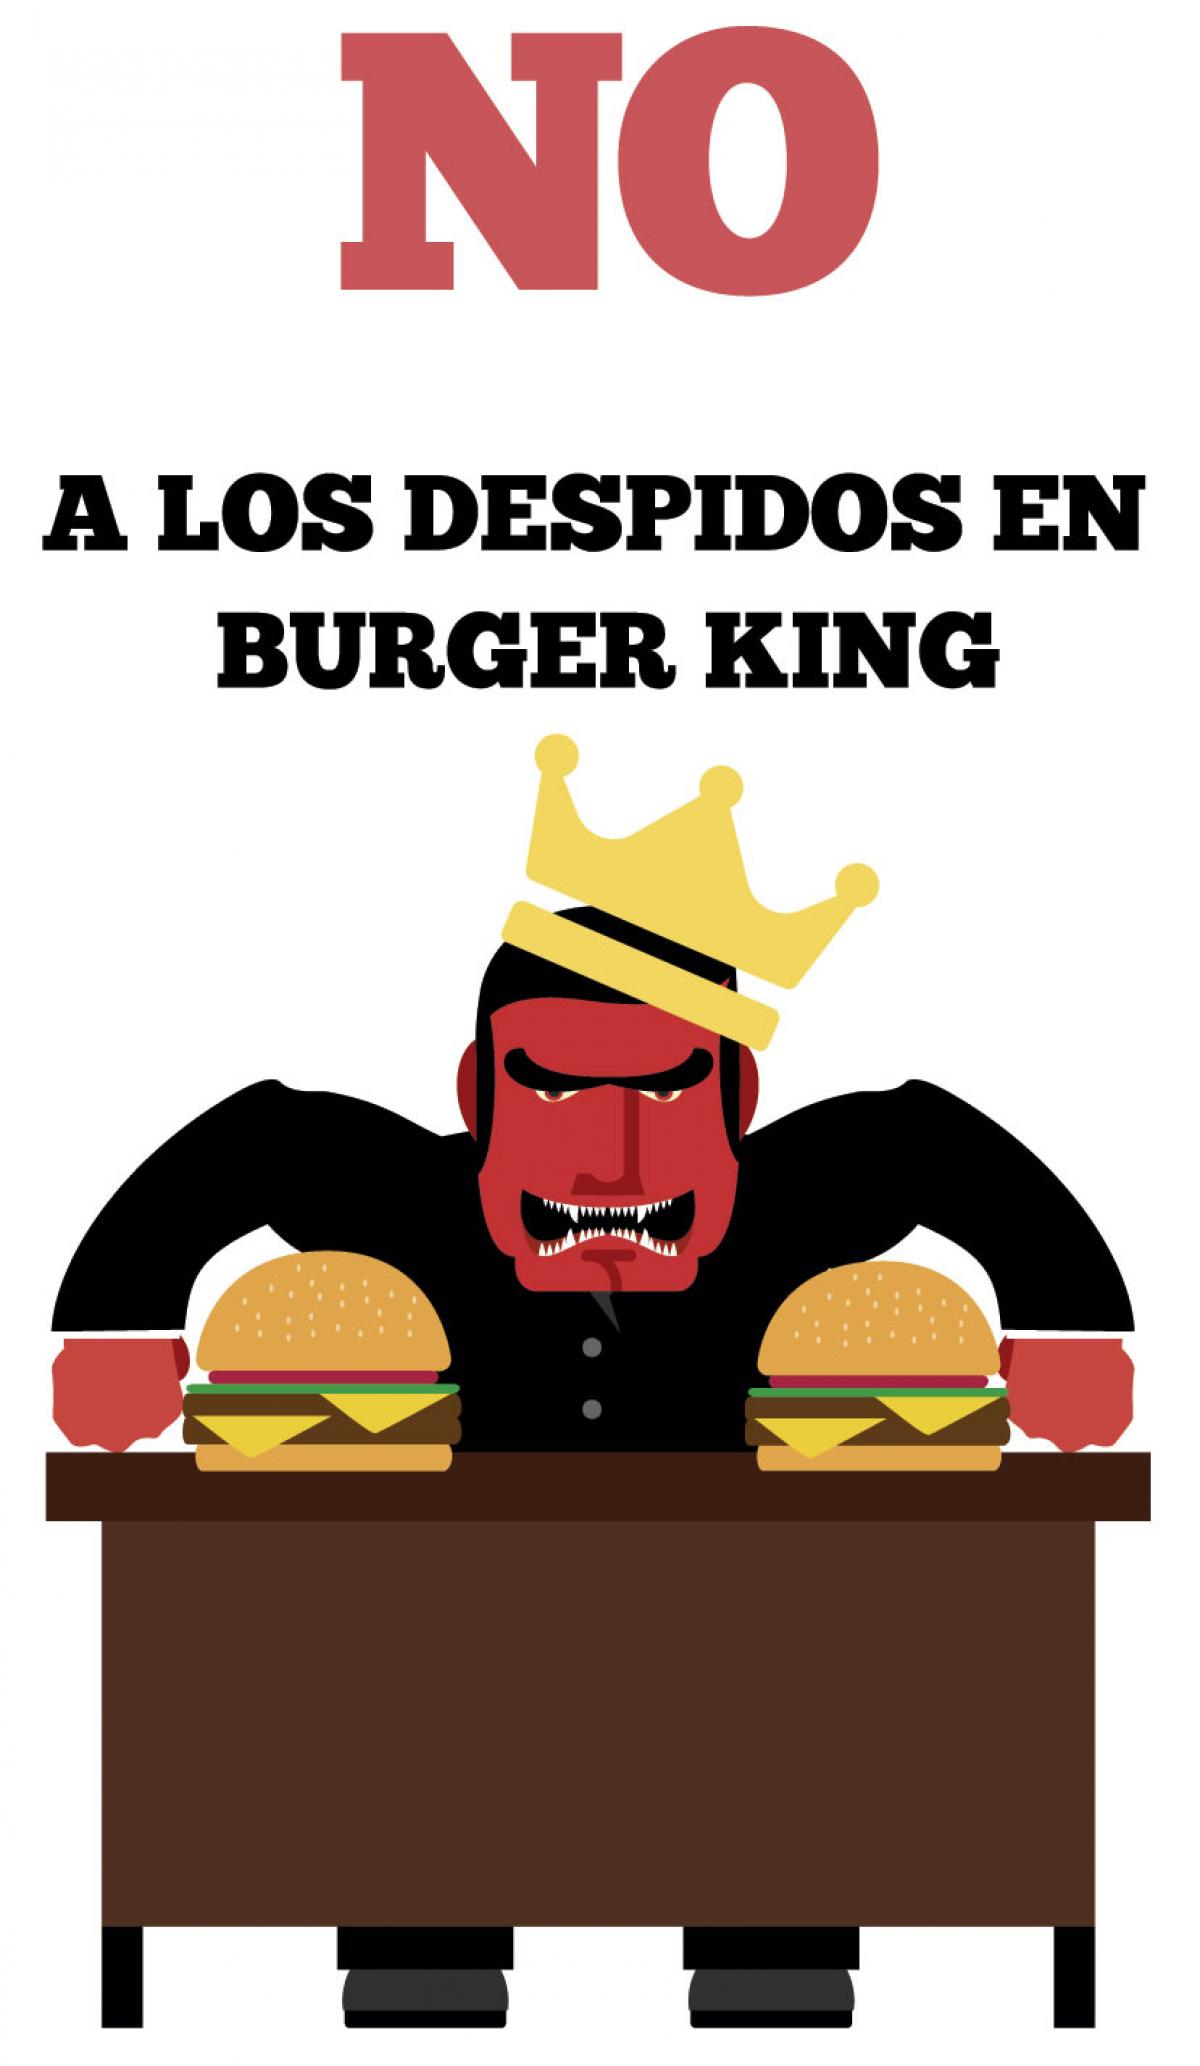 CCOO se moviliza contra los despidos en Burger King